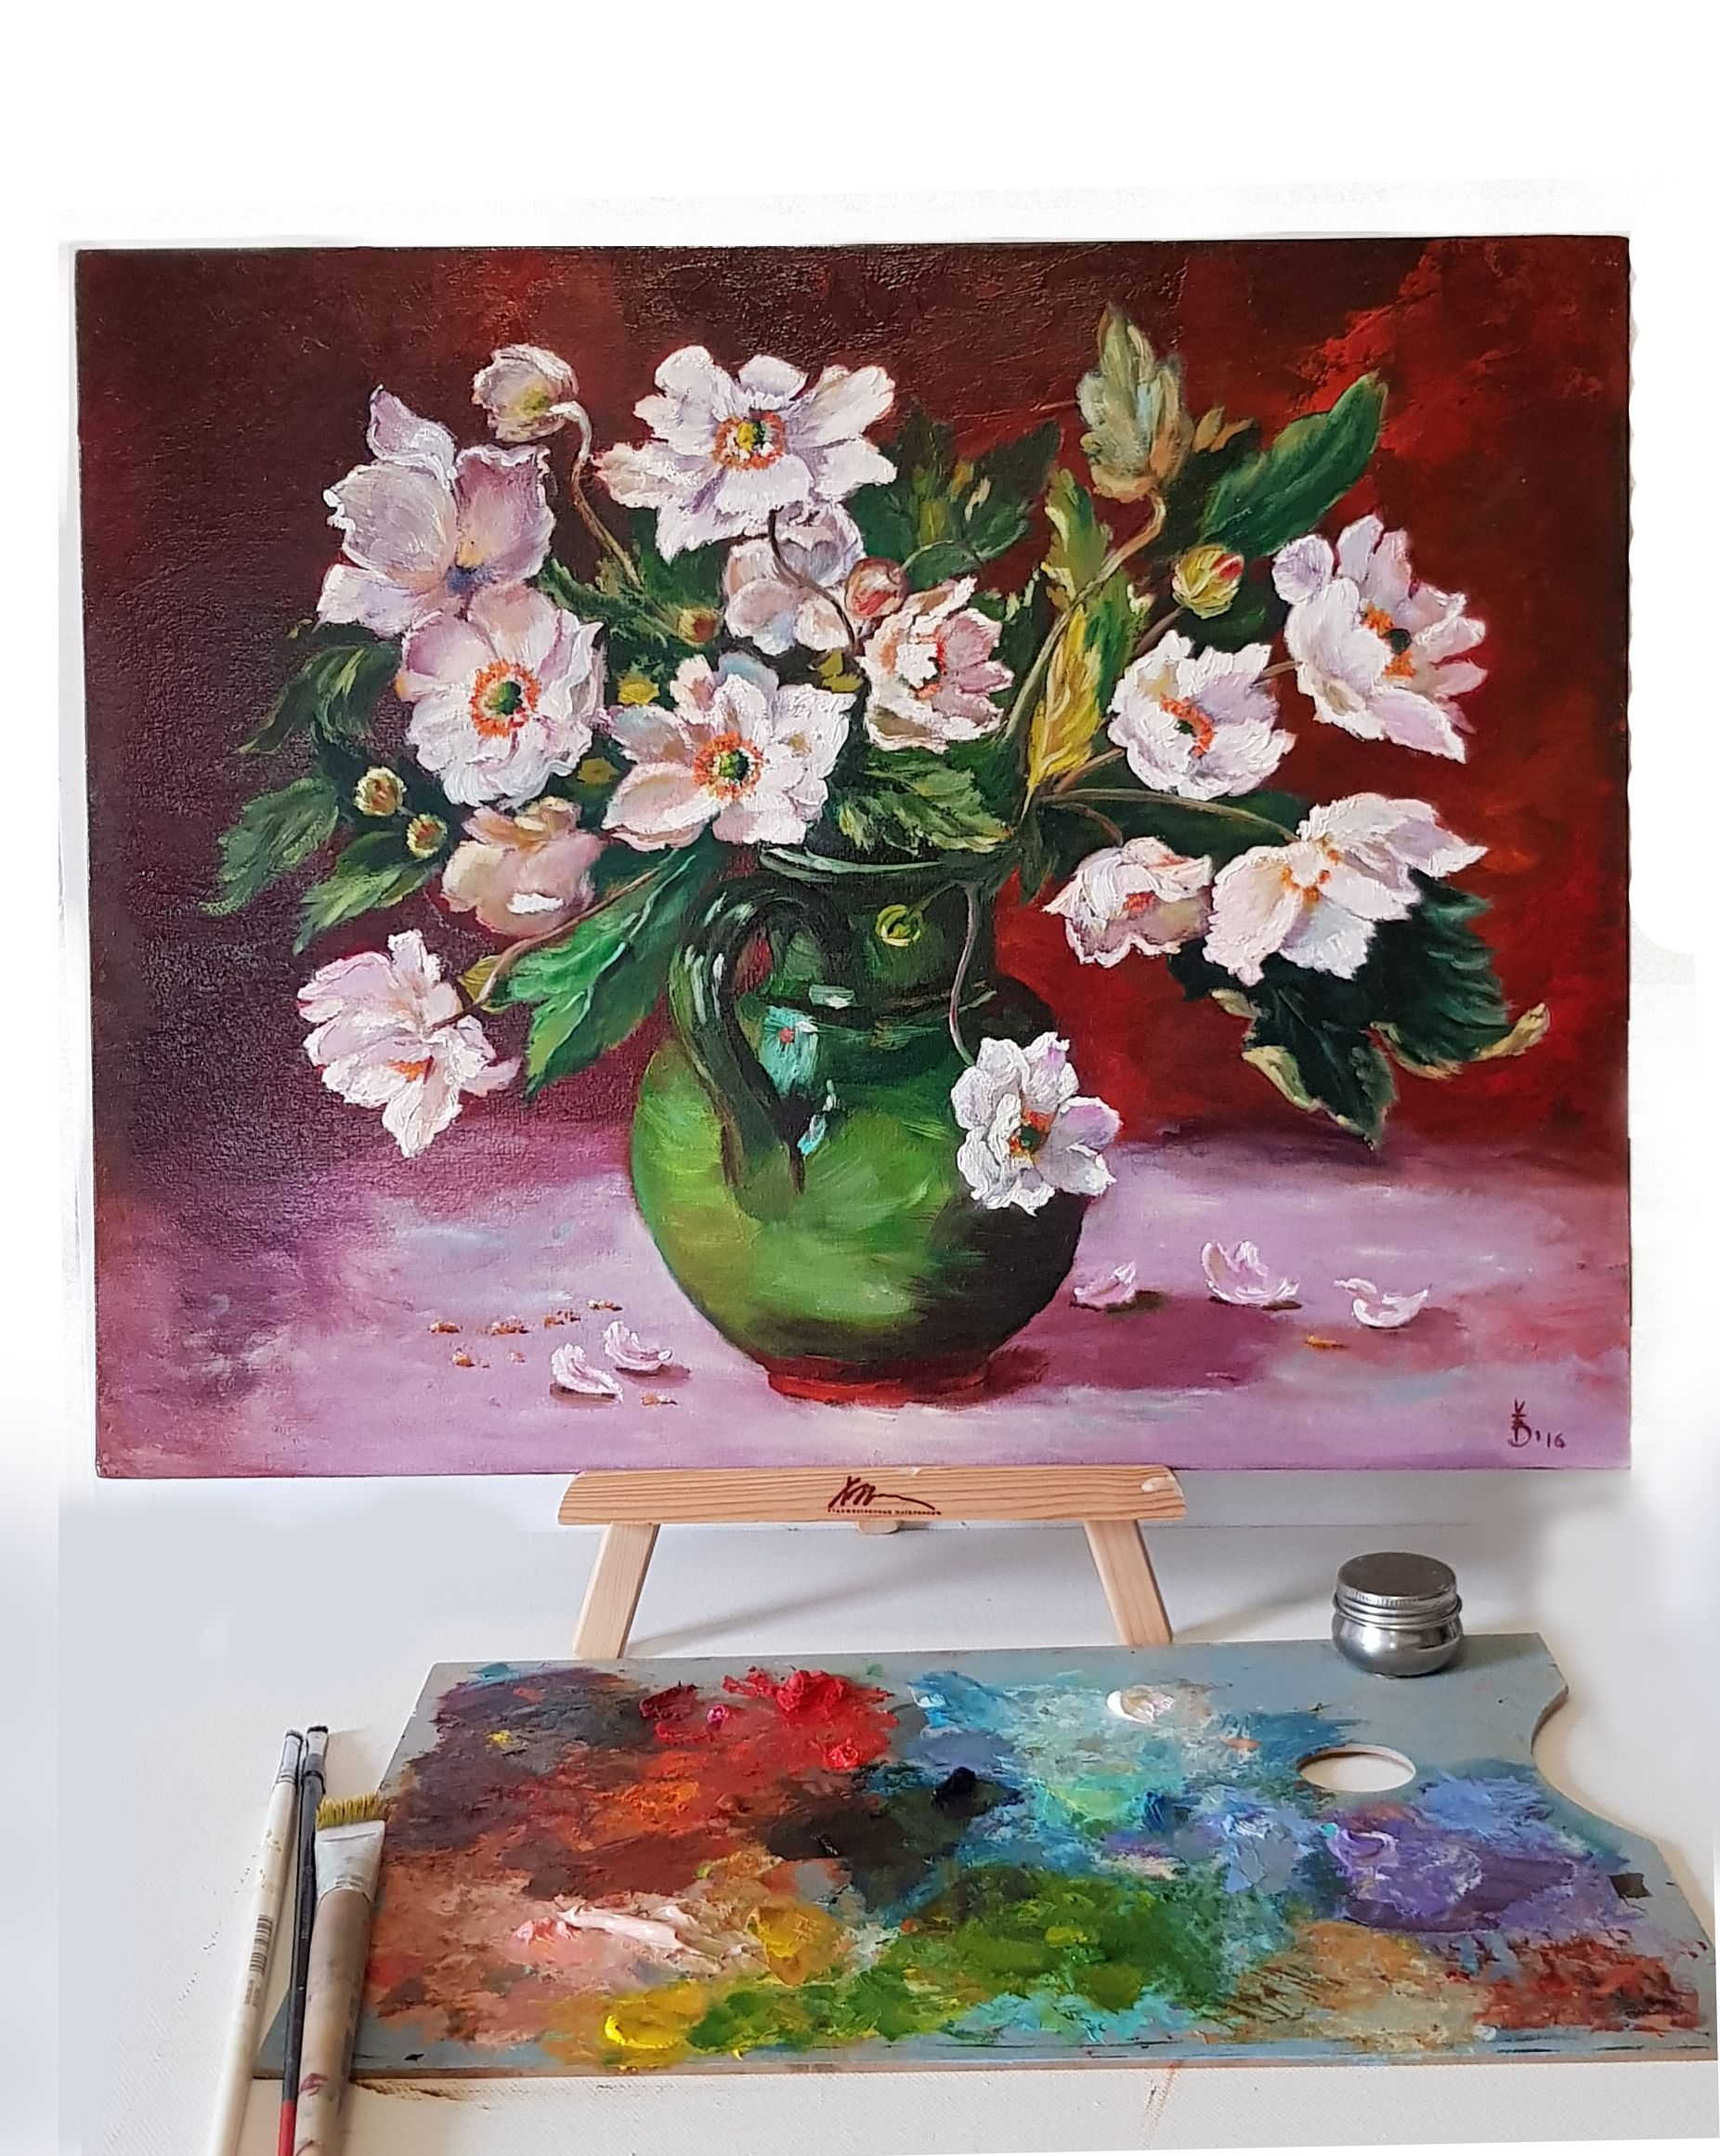 White Flowers Oil Painting Magnolia Painting Bouquet Flowers Etsy Oil Painting Flowers Oil Painting Flower Painting